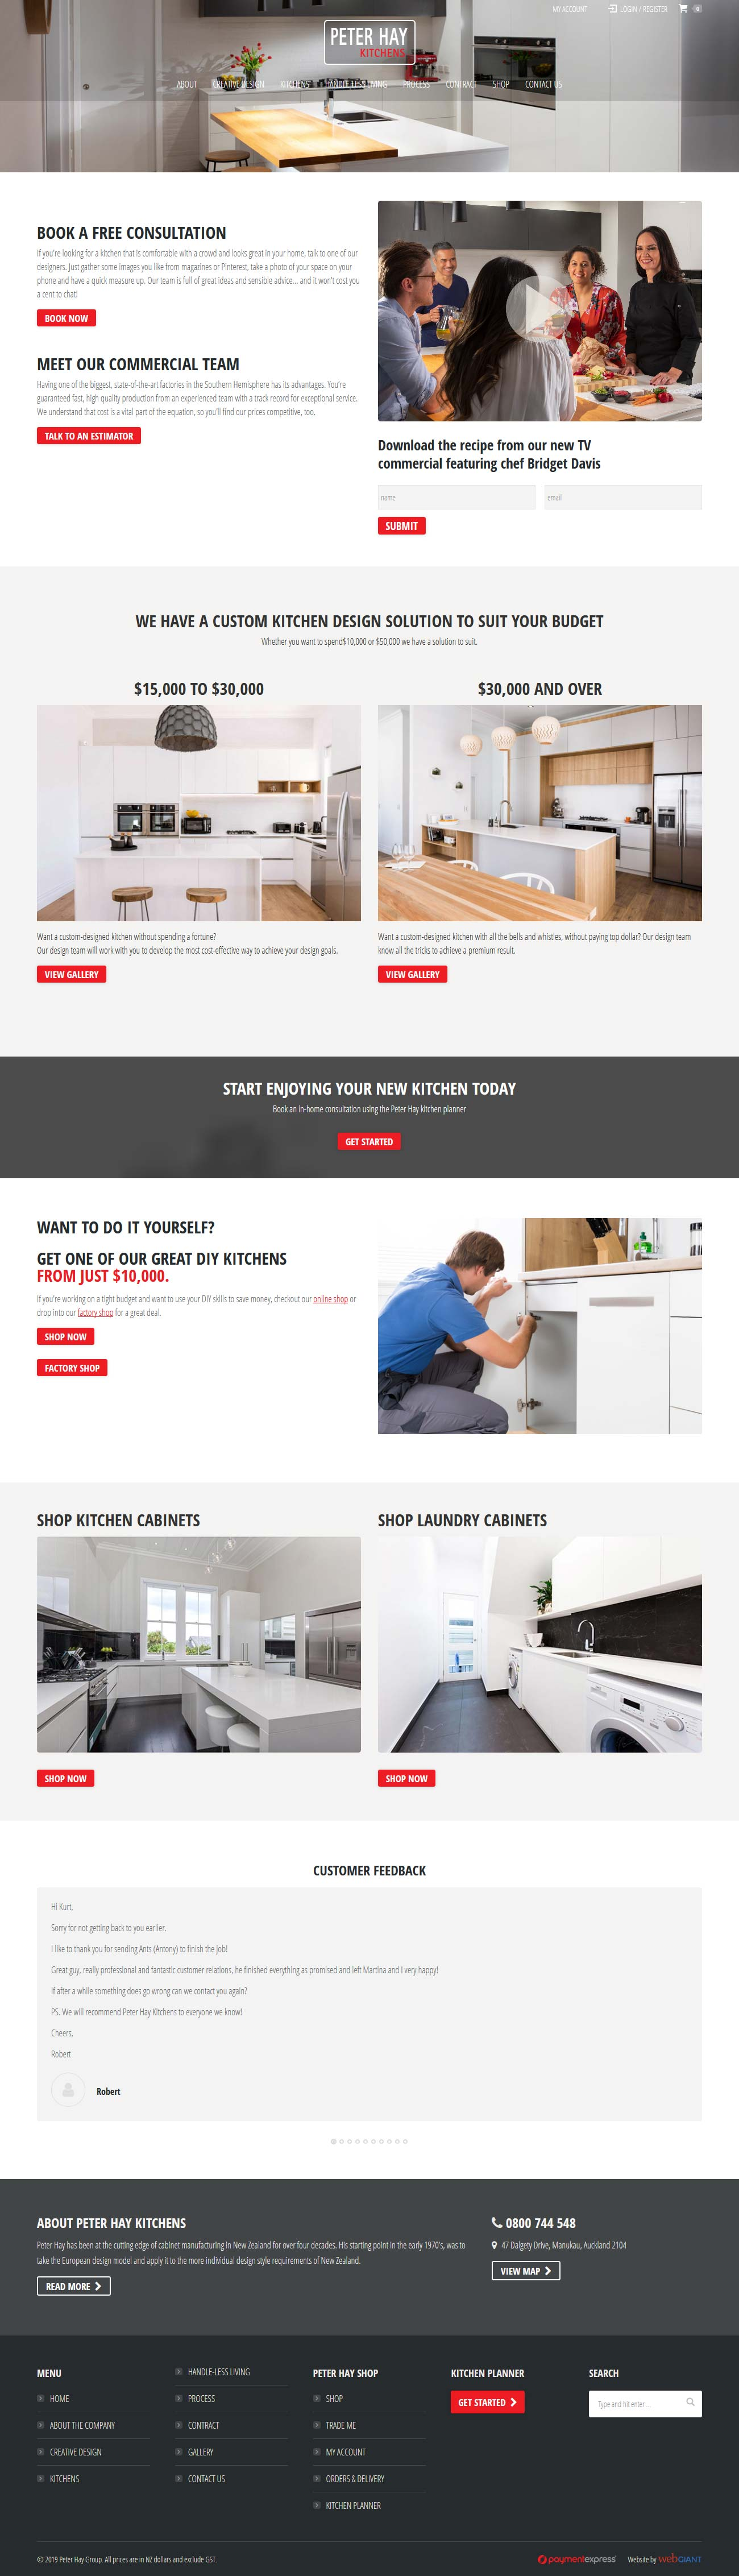 Website design for Peter Hay Kitchens